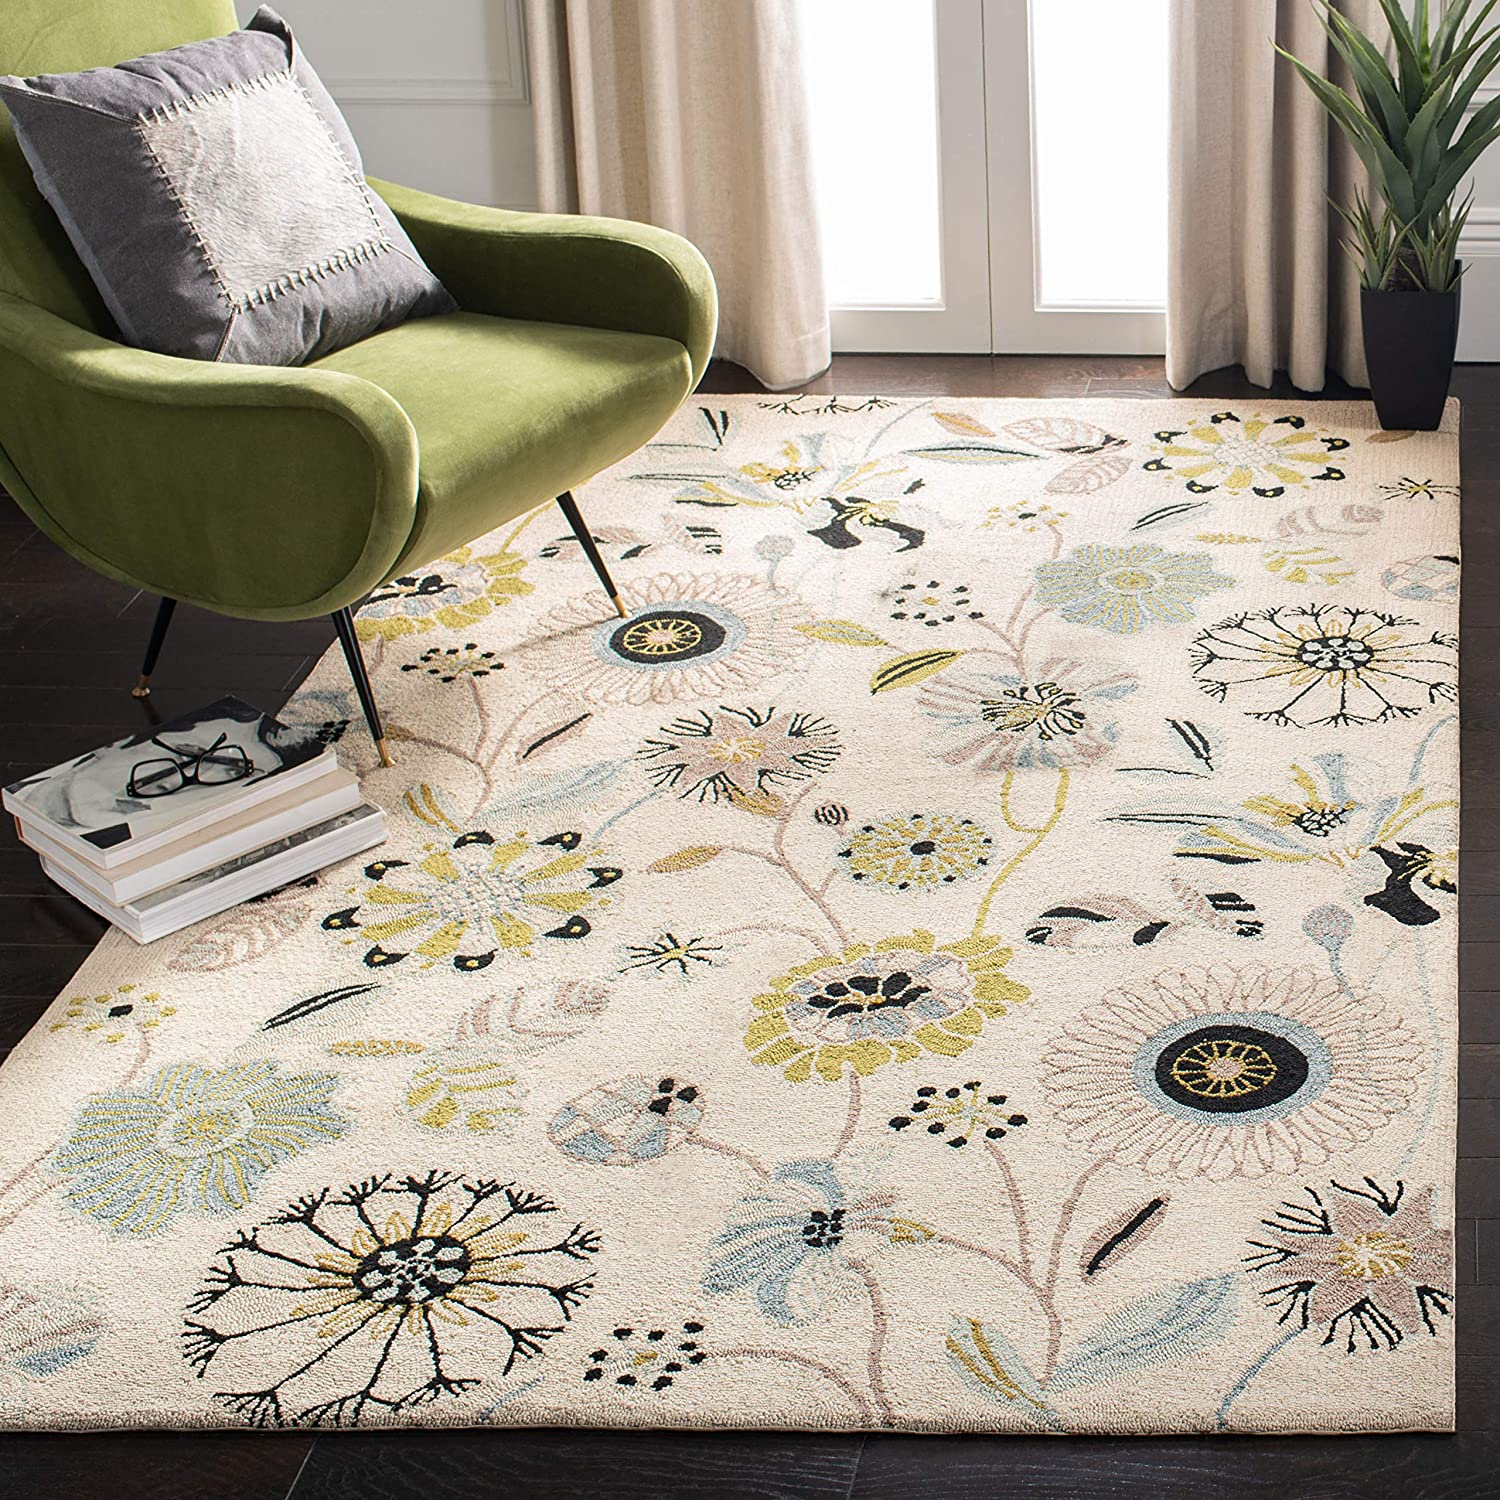 Amazon Com Safavieh Four Seasons Collection Frs482c Hand Hooked Floral Area Rug 3 6 X 5 6 Ivory Blue Furniture Decor